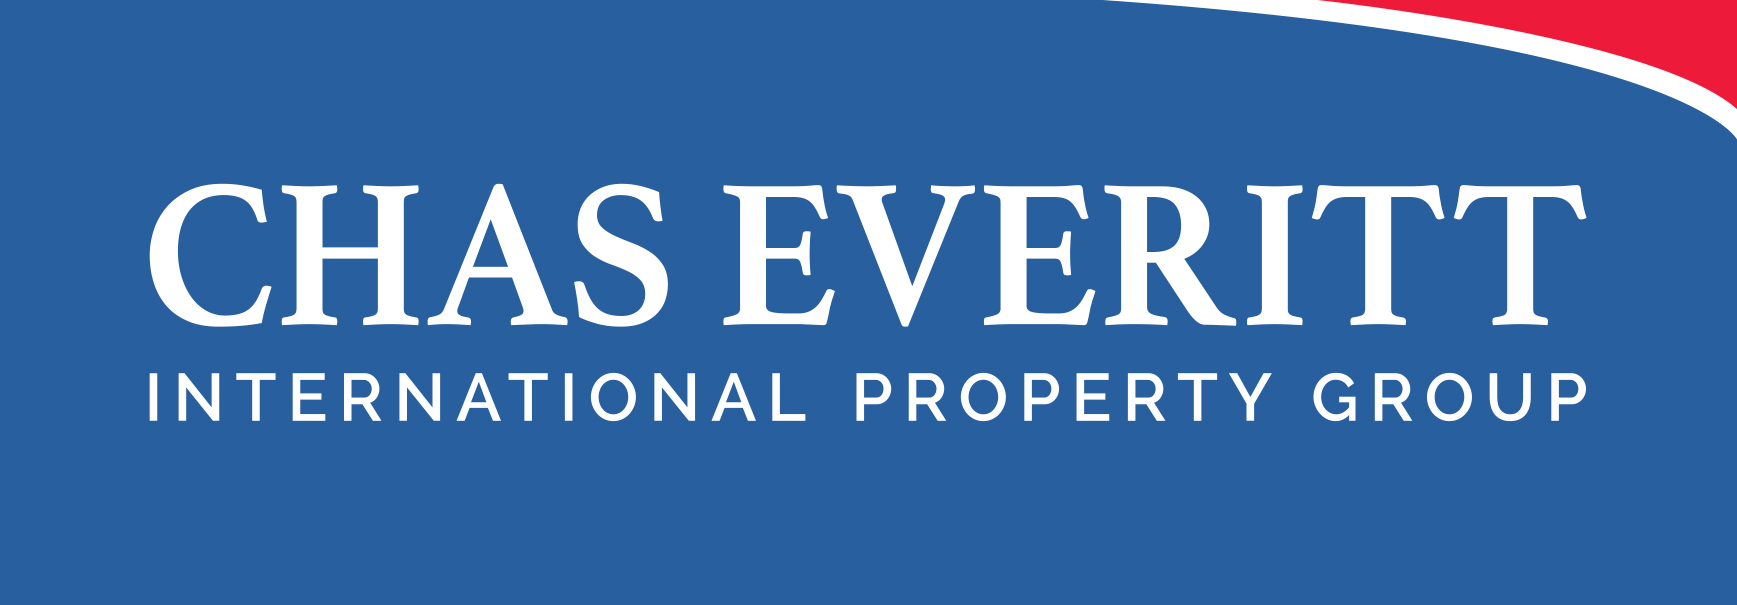 Chas Everitt International Property Group